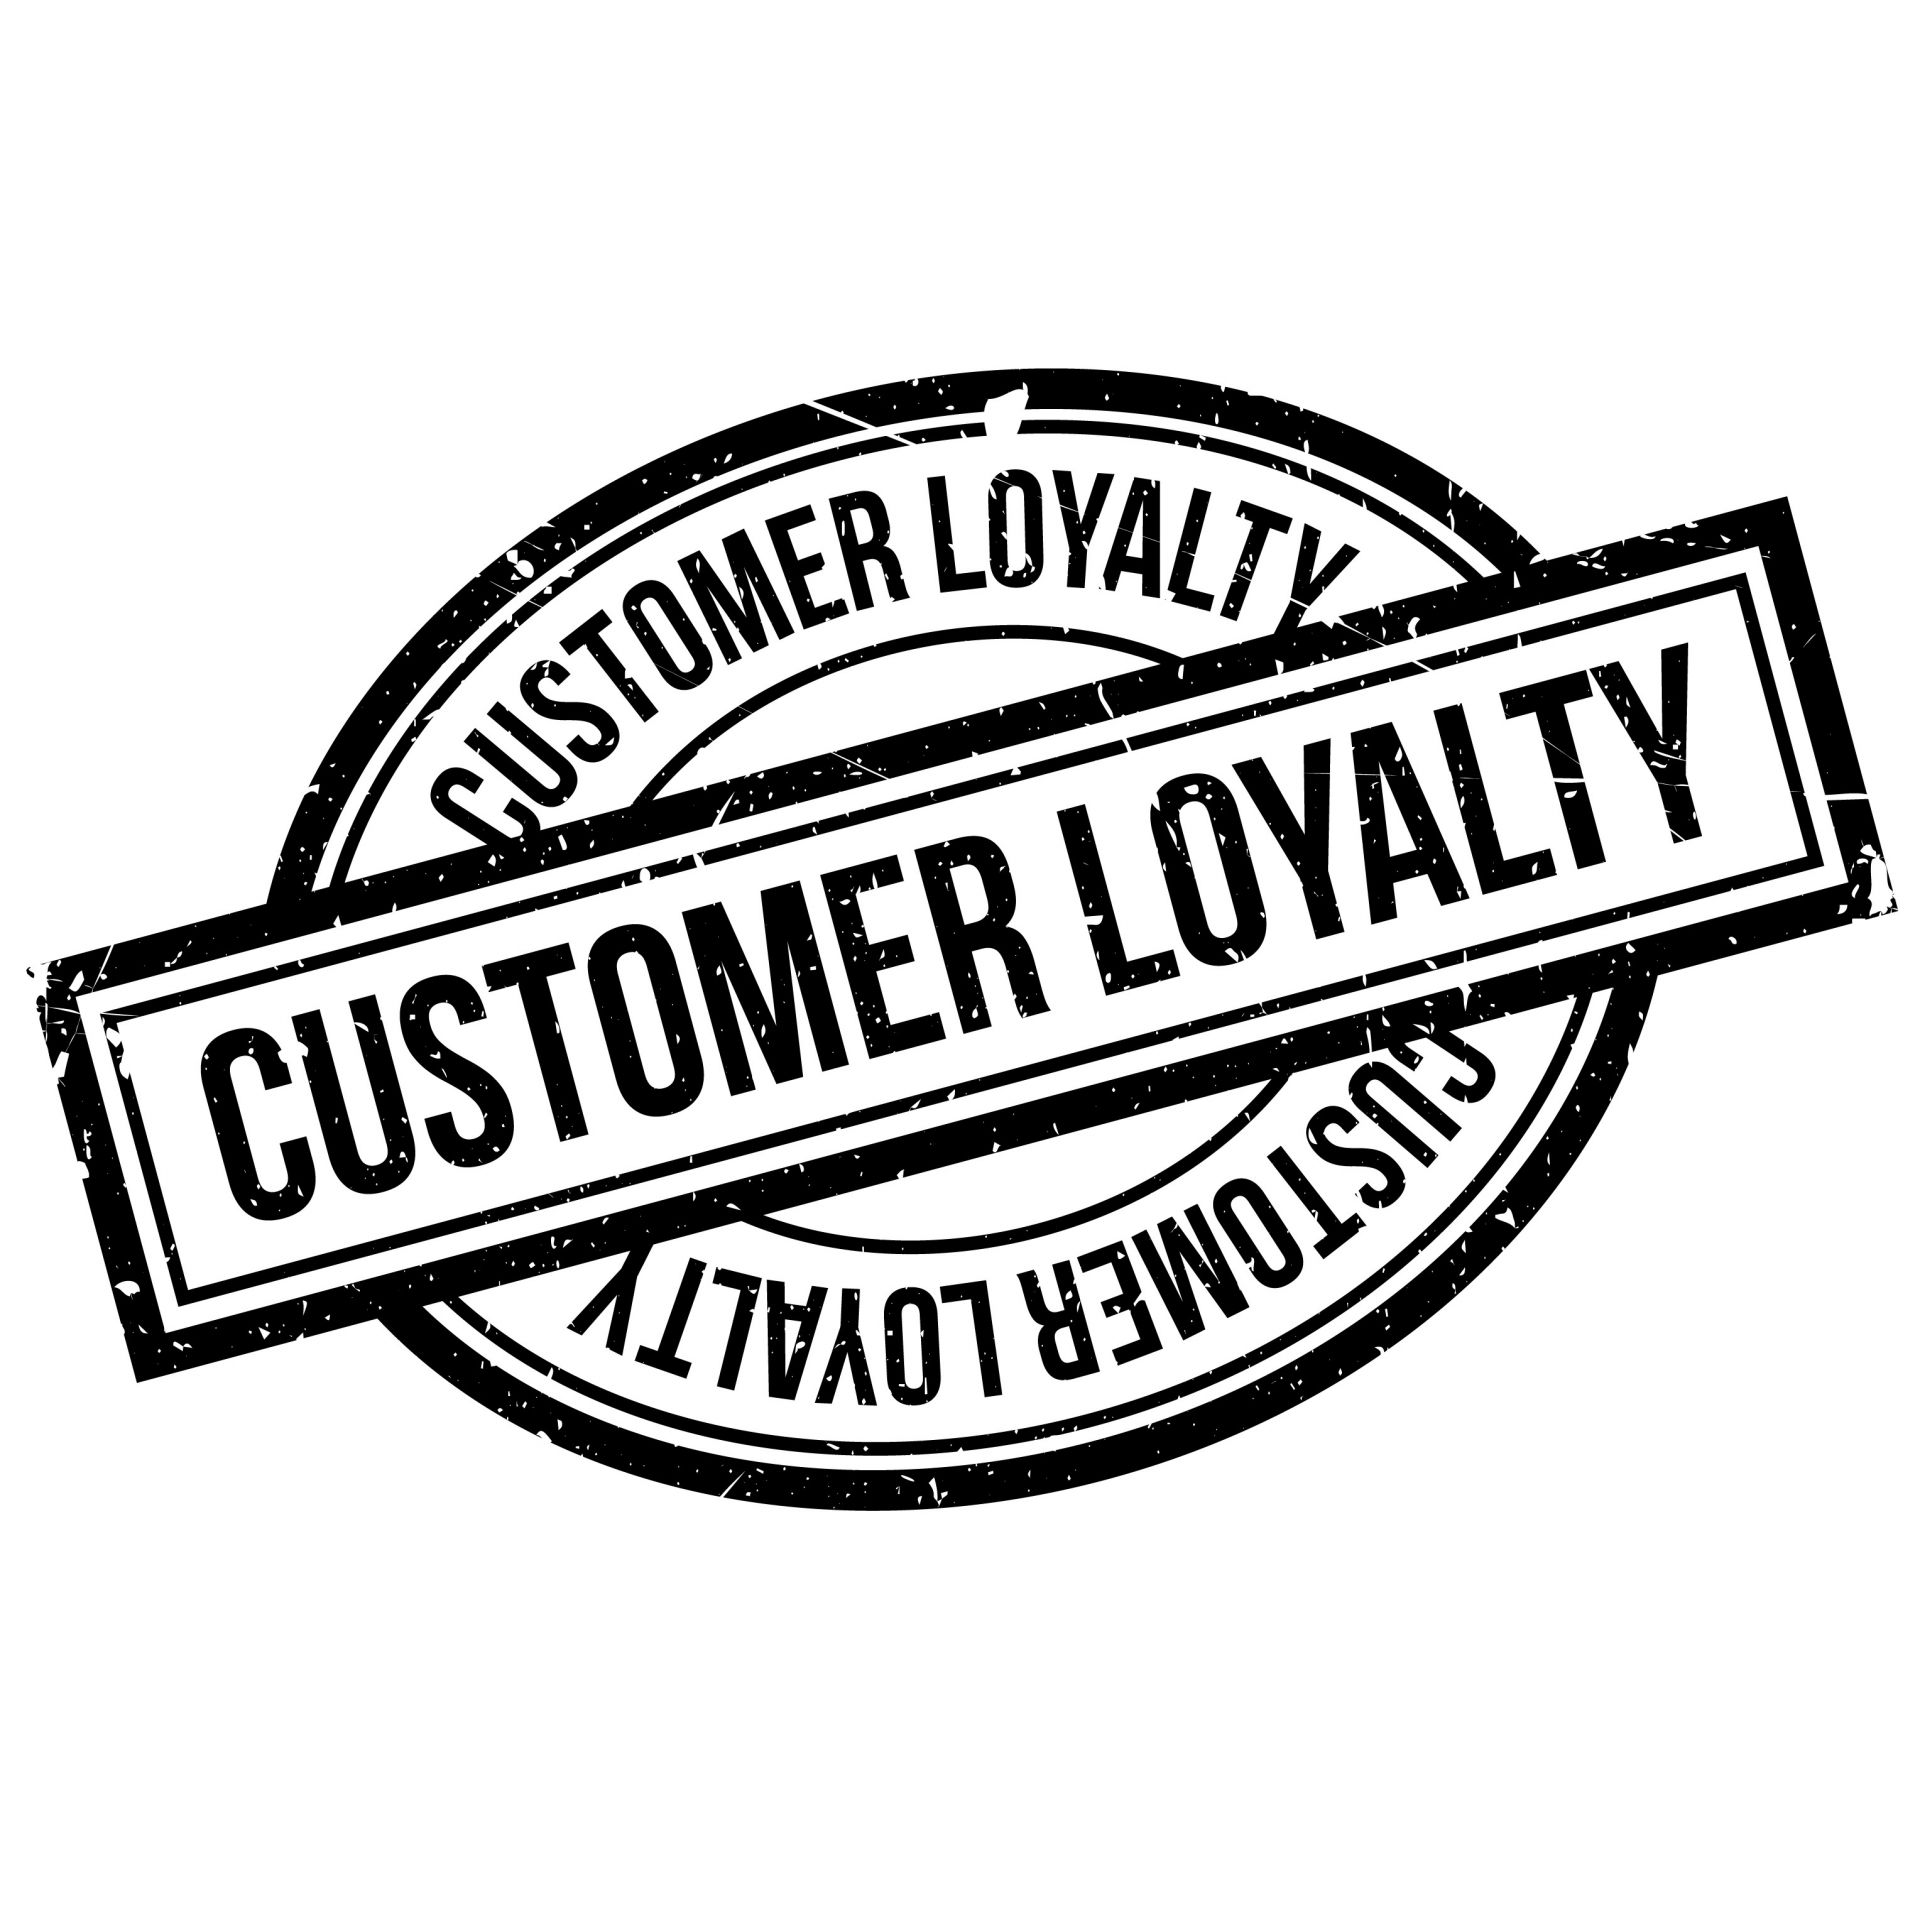 customer loyalty logo.